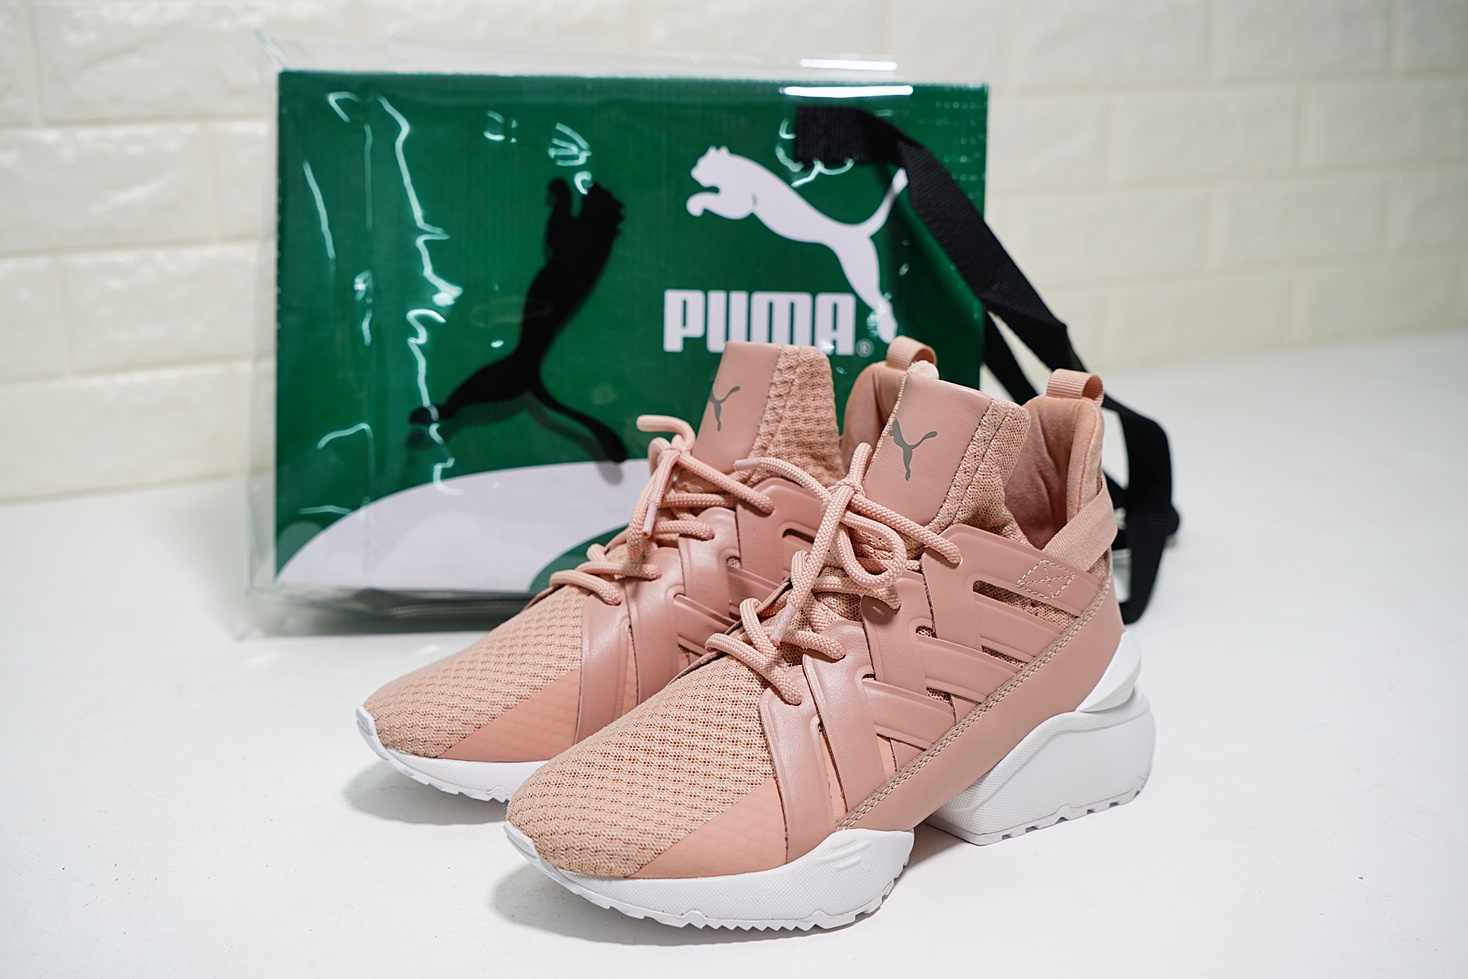 ... PUMA Women s Muse Echo Satin EP Sneakers Badminton shoes Size 35-40 6baf25cb0